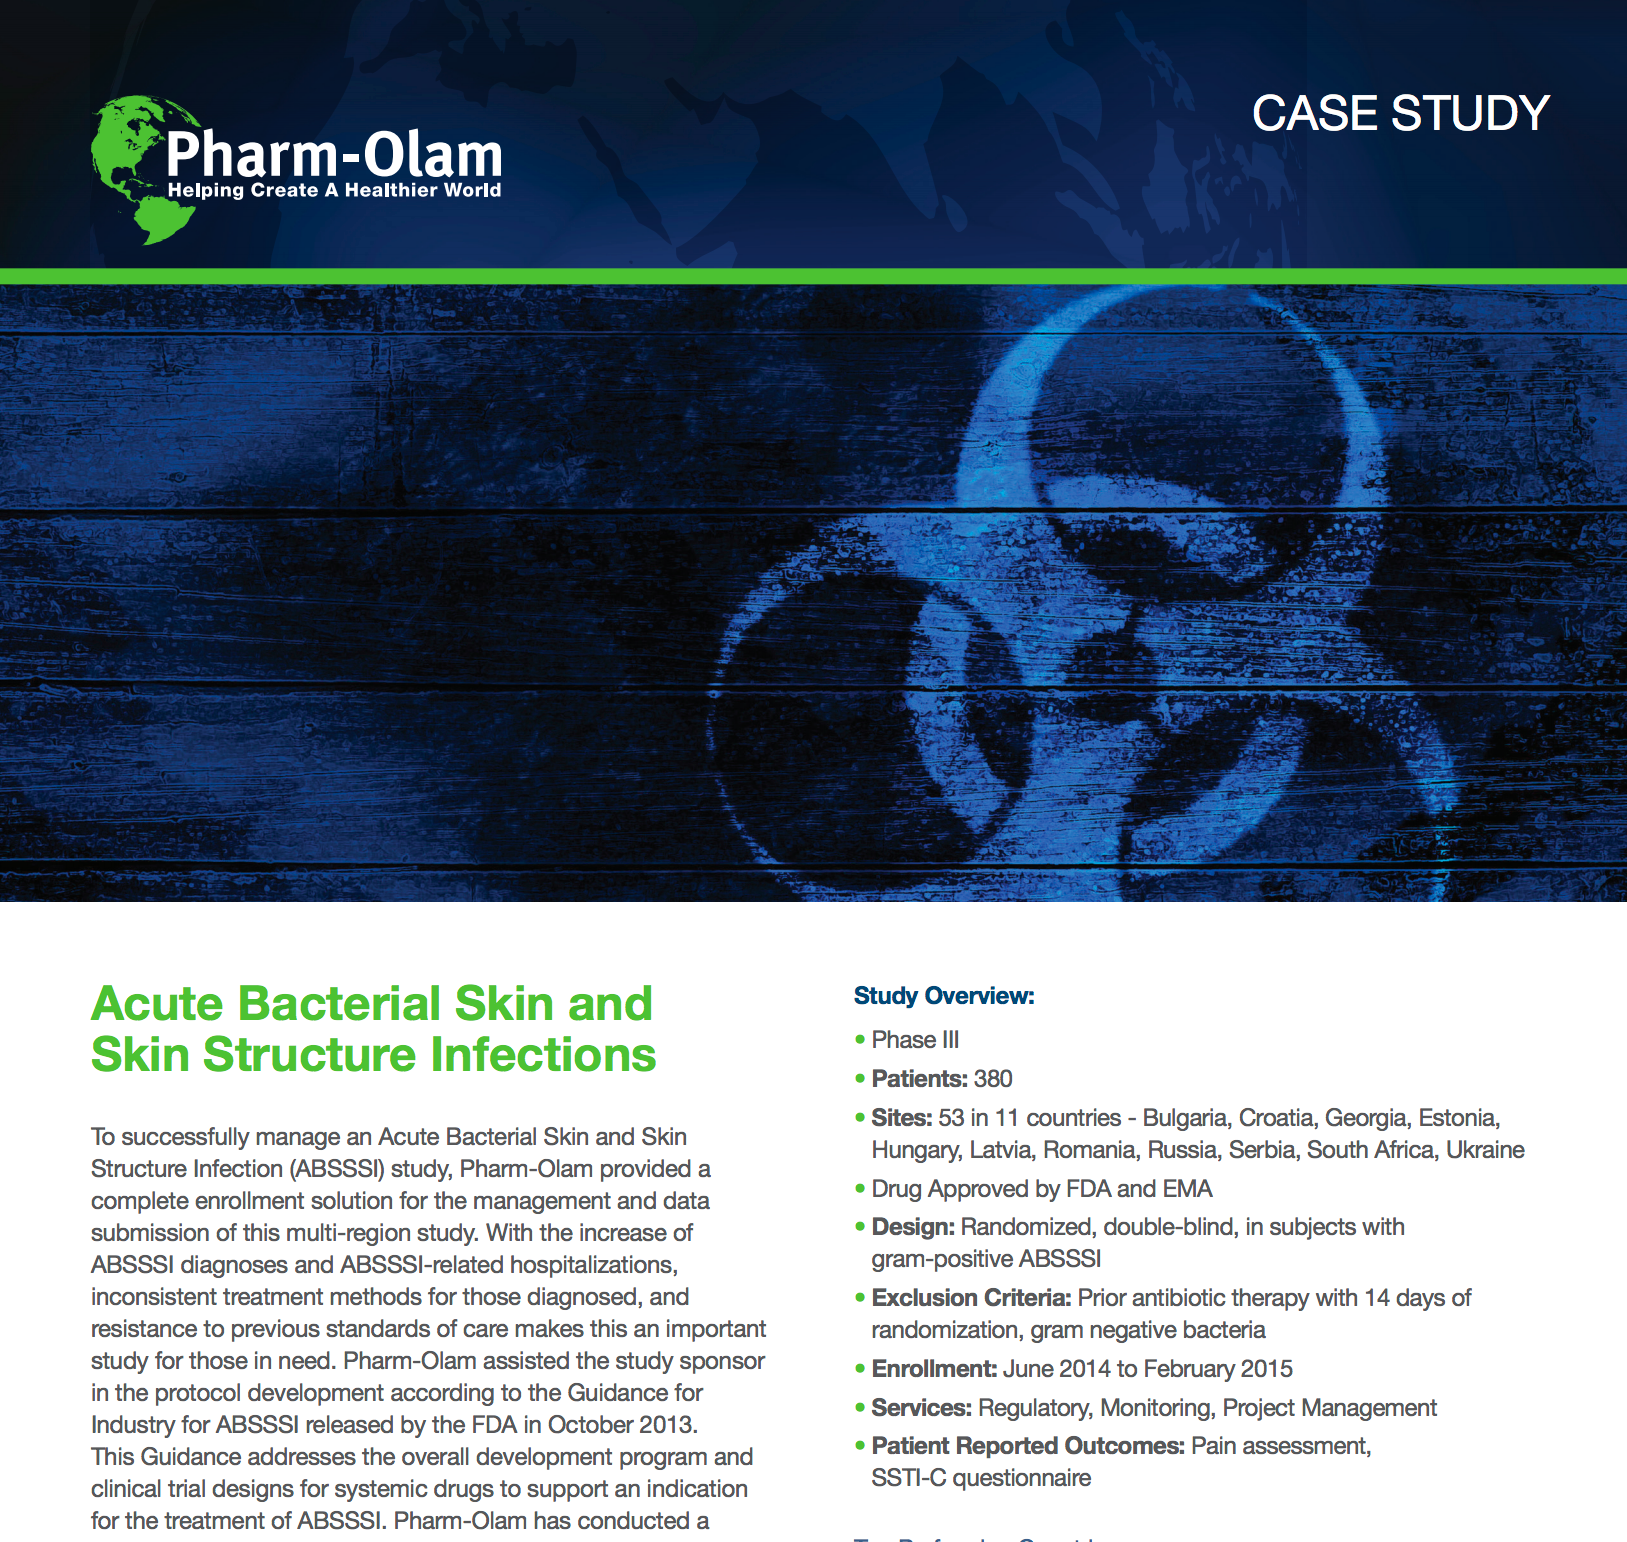 Acute Bacterial Skin and Skin Structure Infection (ABSSSI)